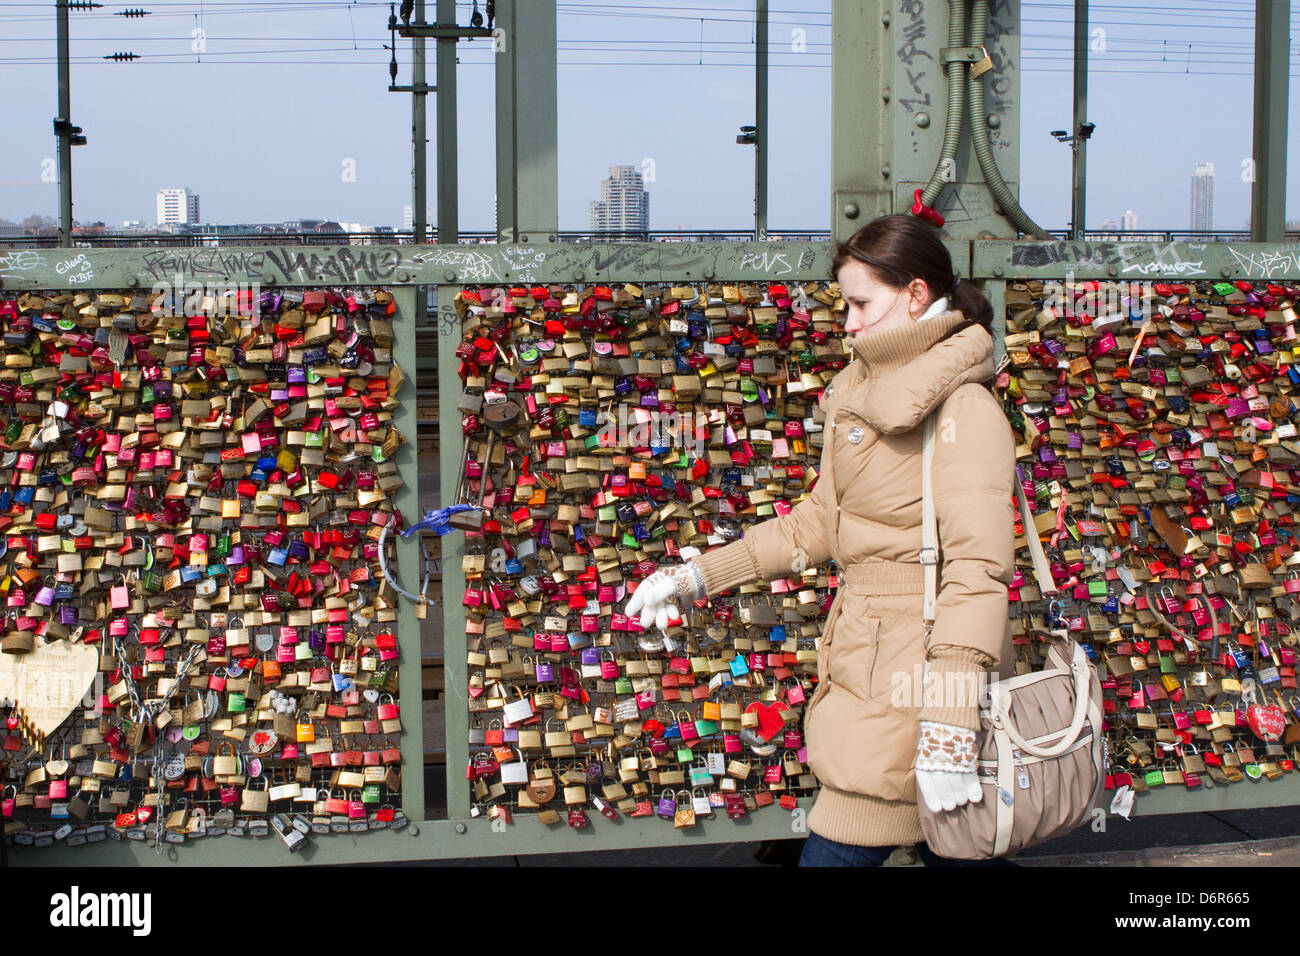 Woman walks past Ppdlocks on Cologne Railway Bridge signify ing couples' love for each other - Stock Image